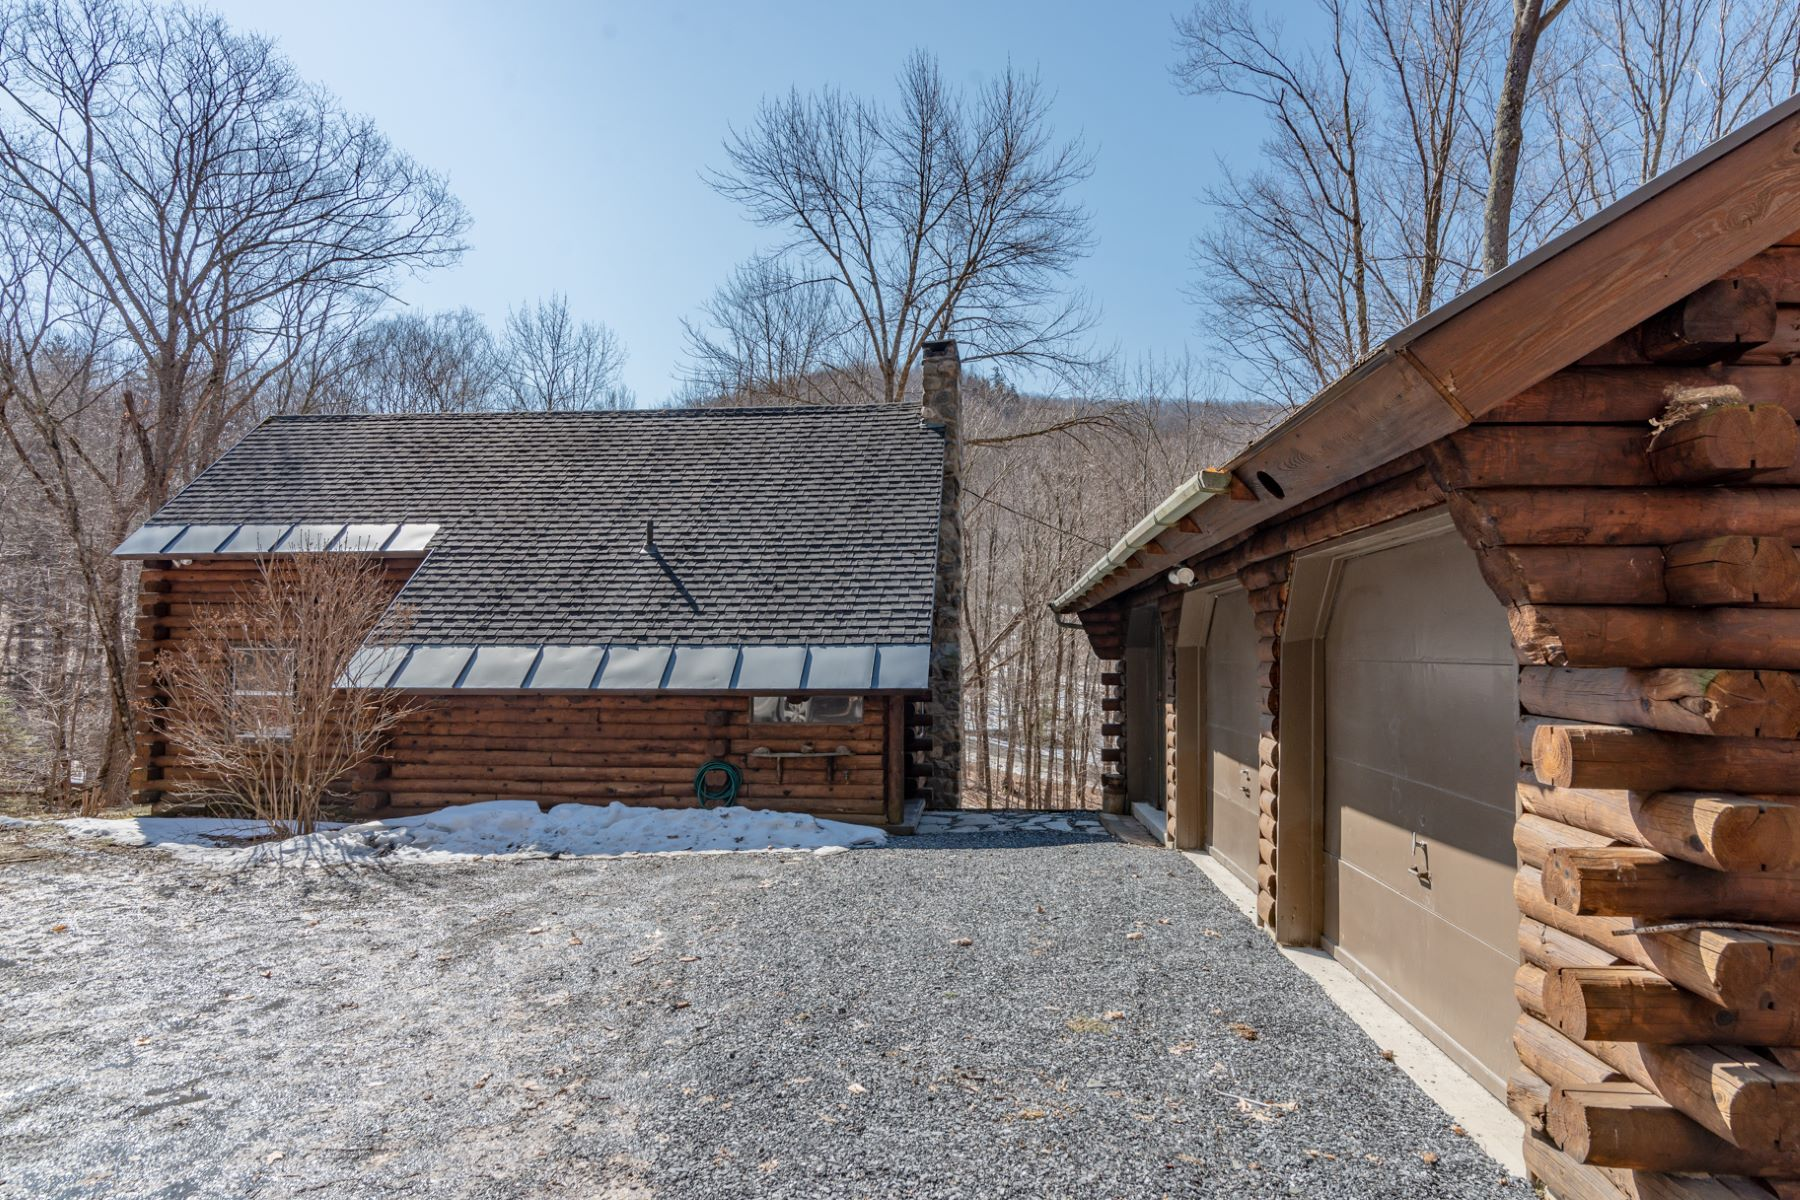 Single Family Homes for Sale at 4548 Rupert Road, Sandgate 4548 Rupert Rd Sandgate, Vermont 05250 United States